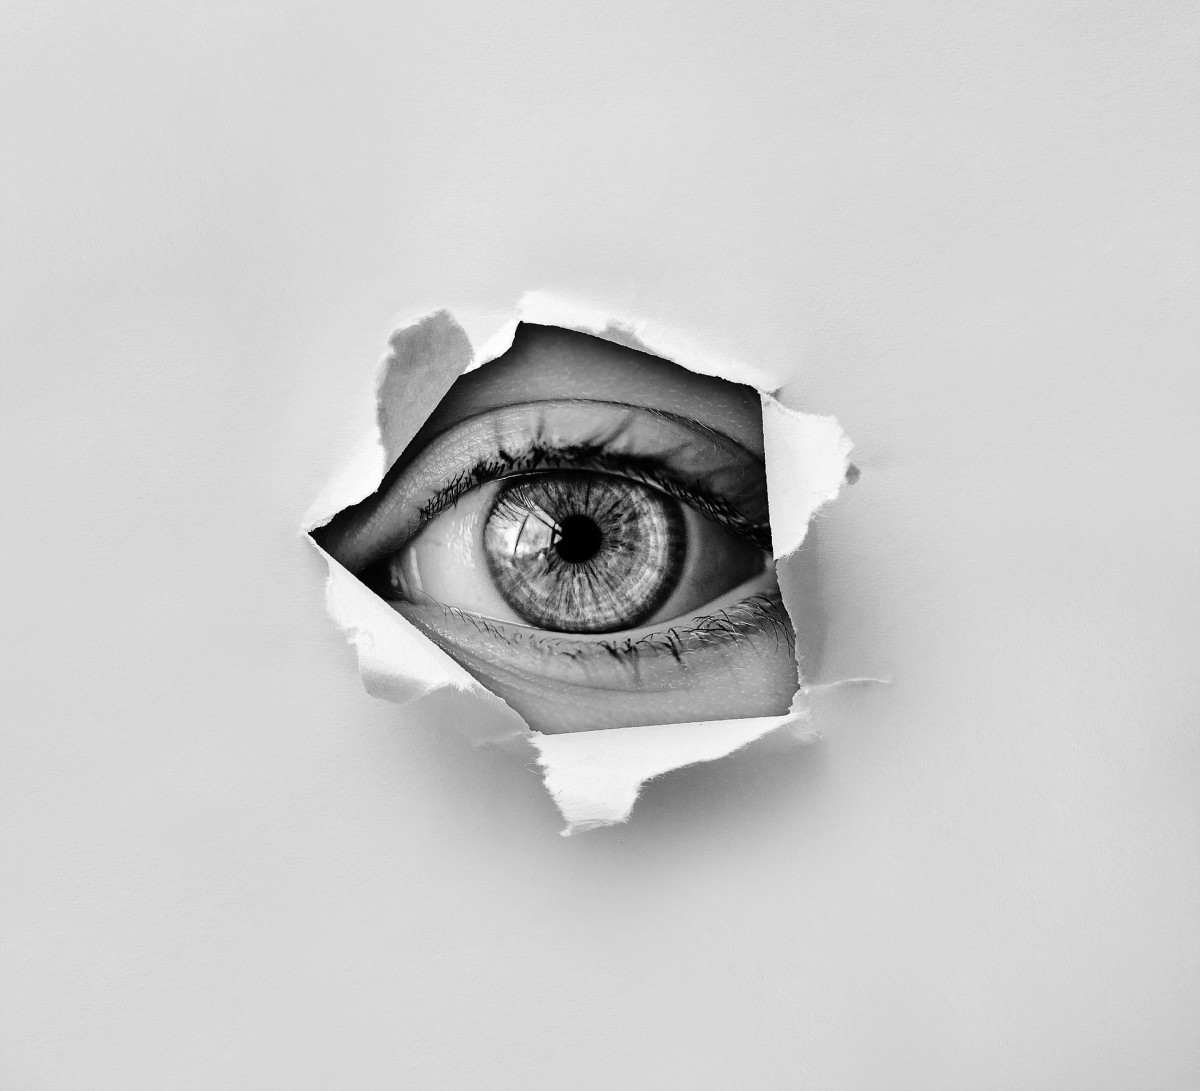 My Husband Is Spying on Me | PairedLife